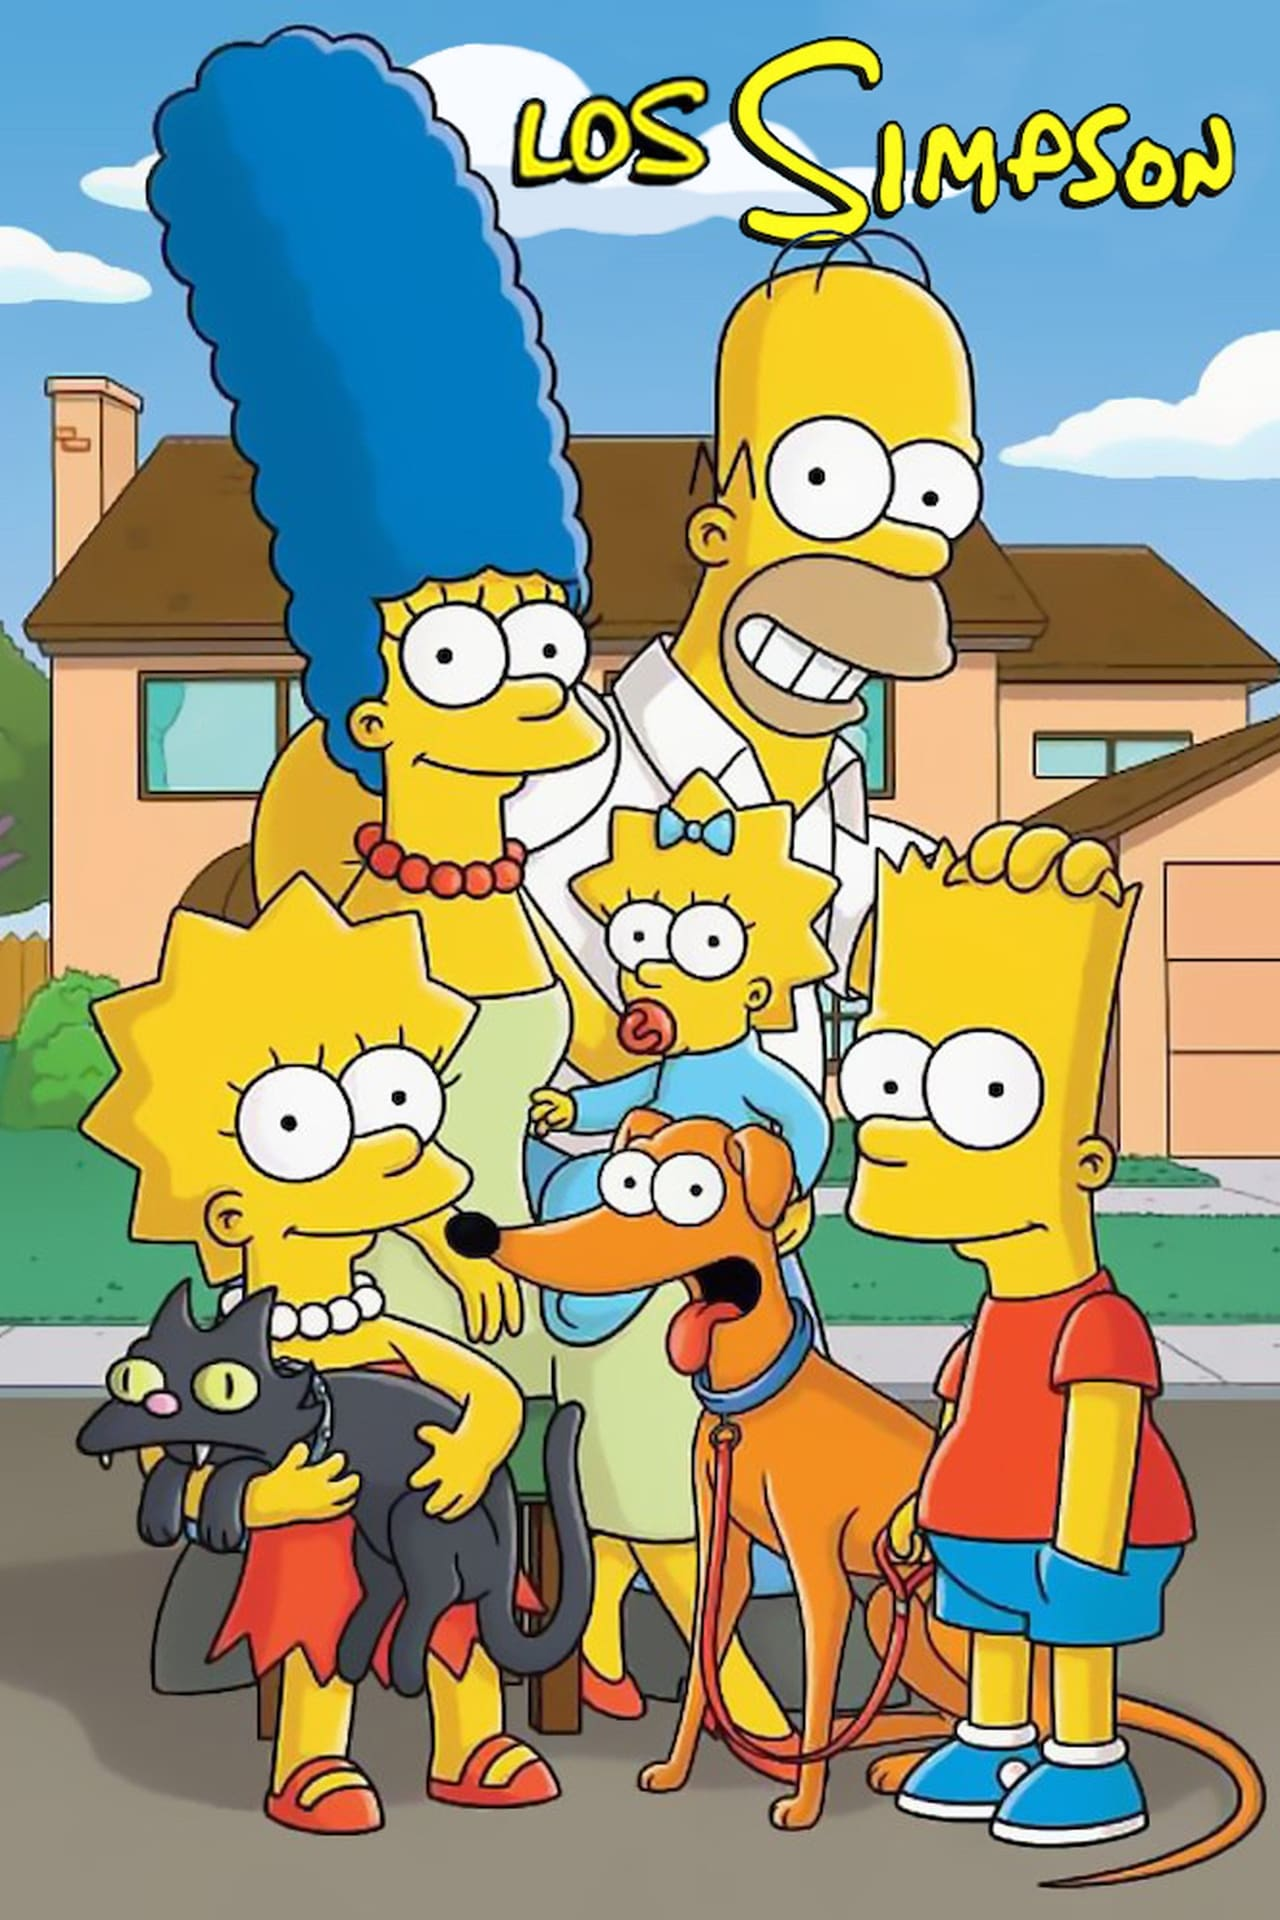 Los Simpson - Season 7 Episode 9 : El último resplandor del actor secundario Bob